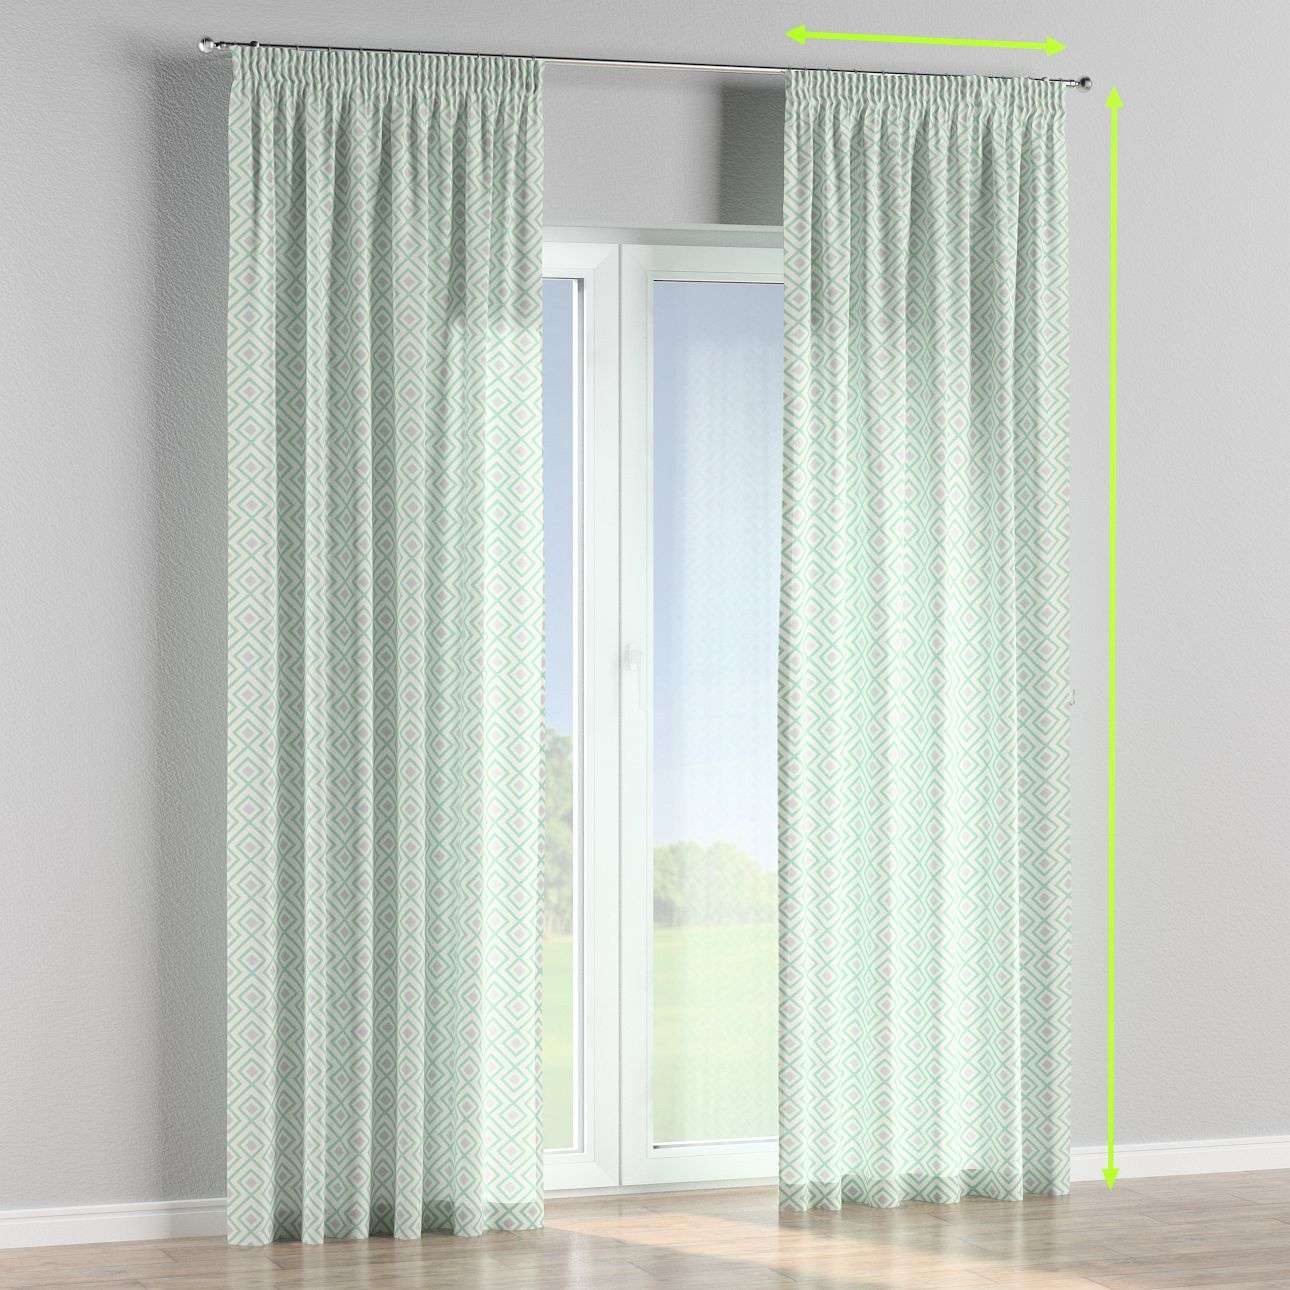 Pencil pleat lined curtains in collection Geometric, fabric: 141-45